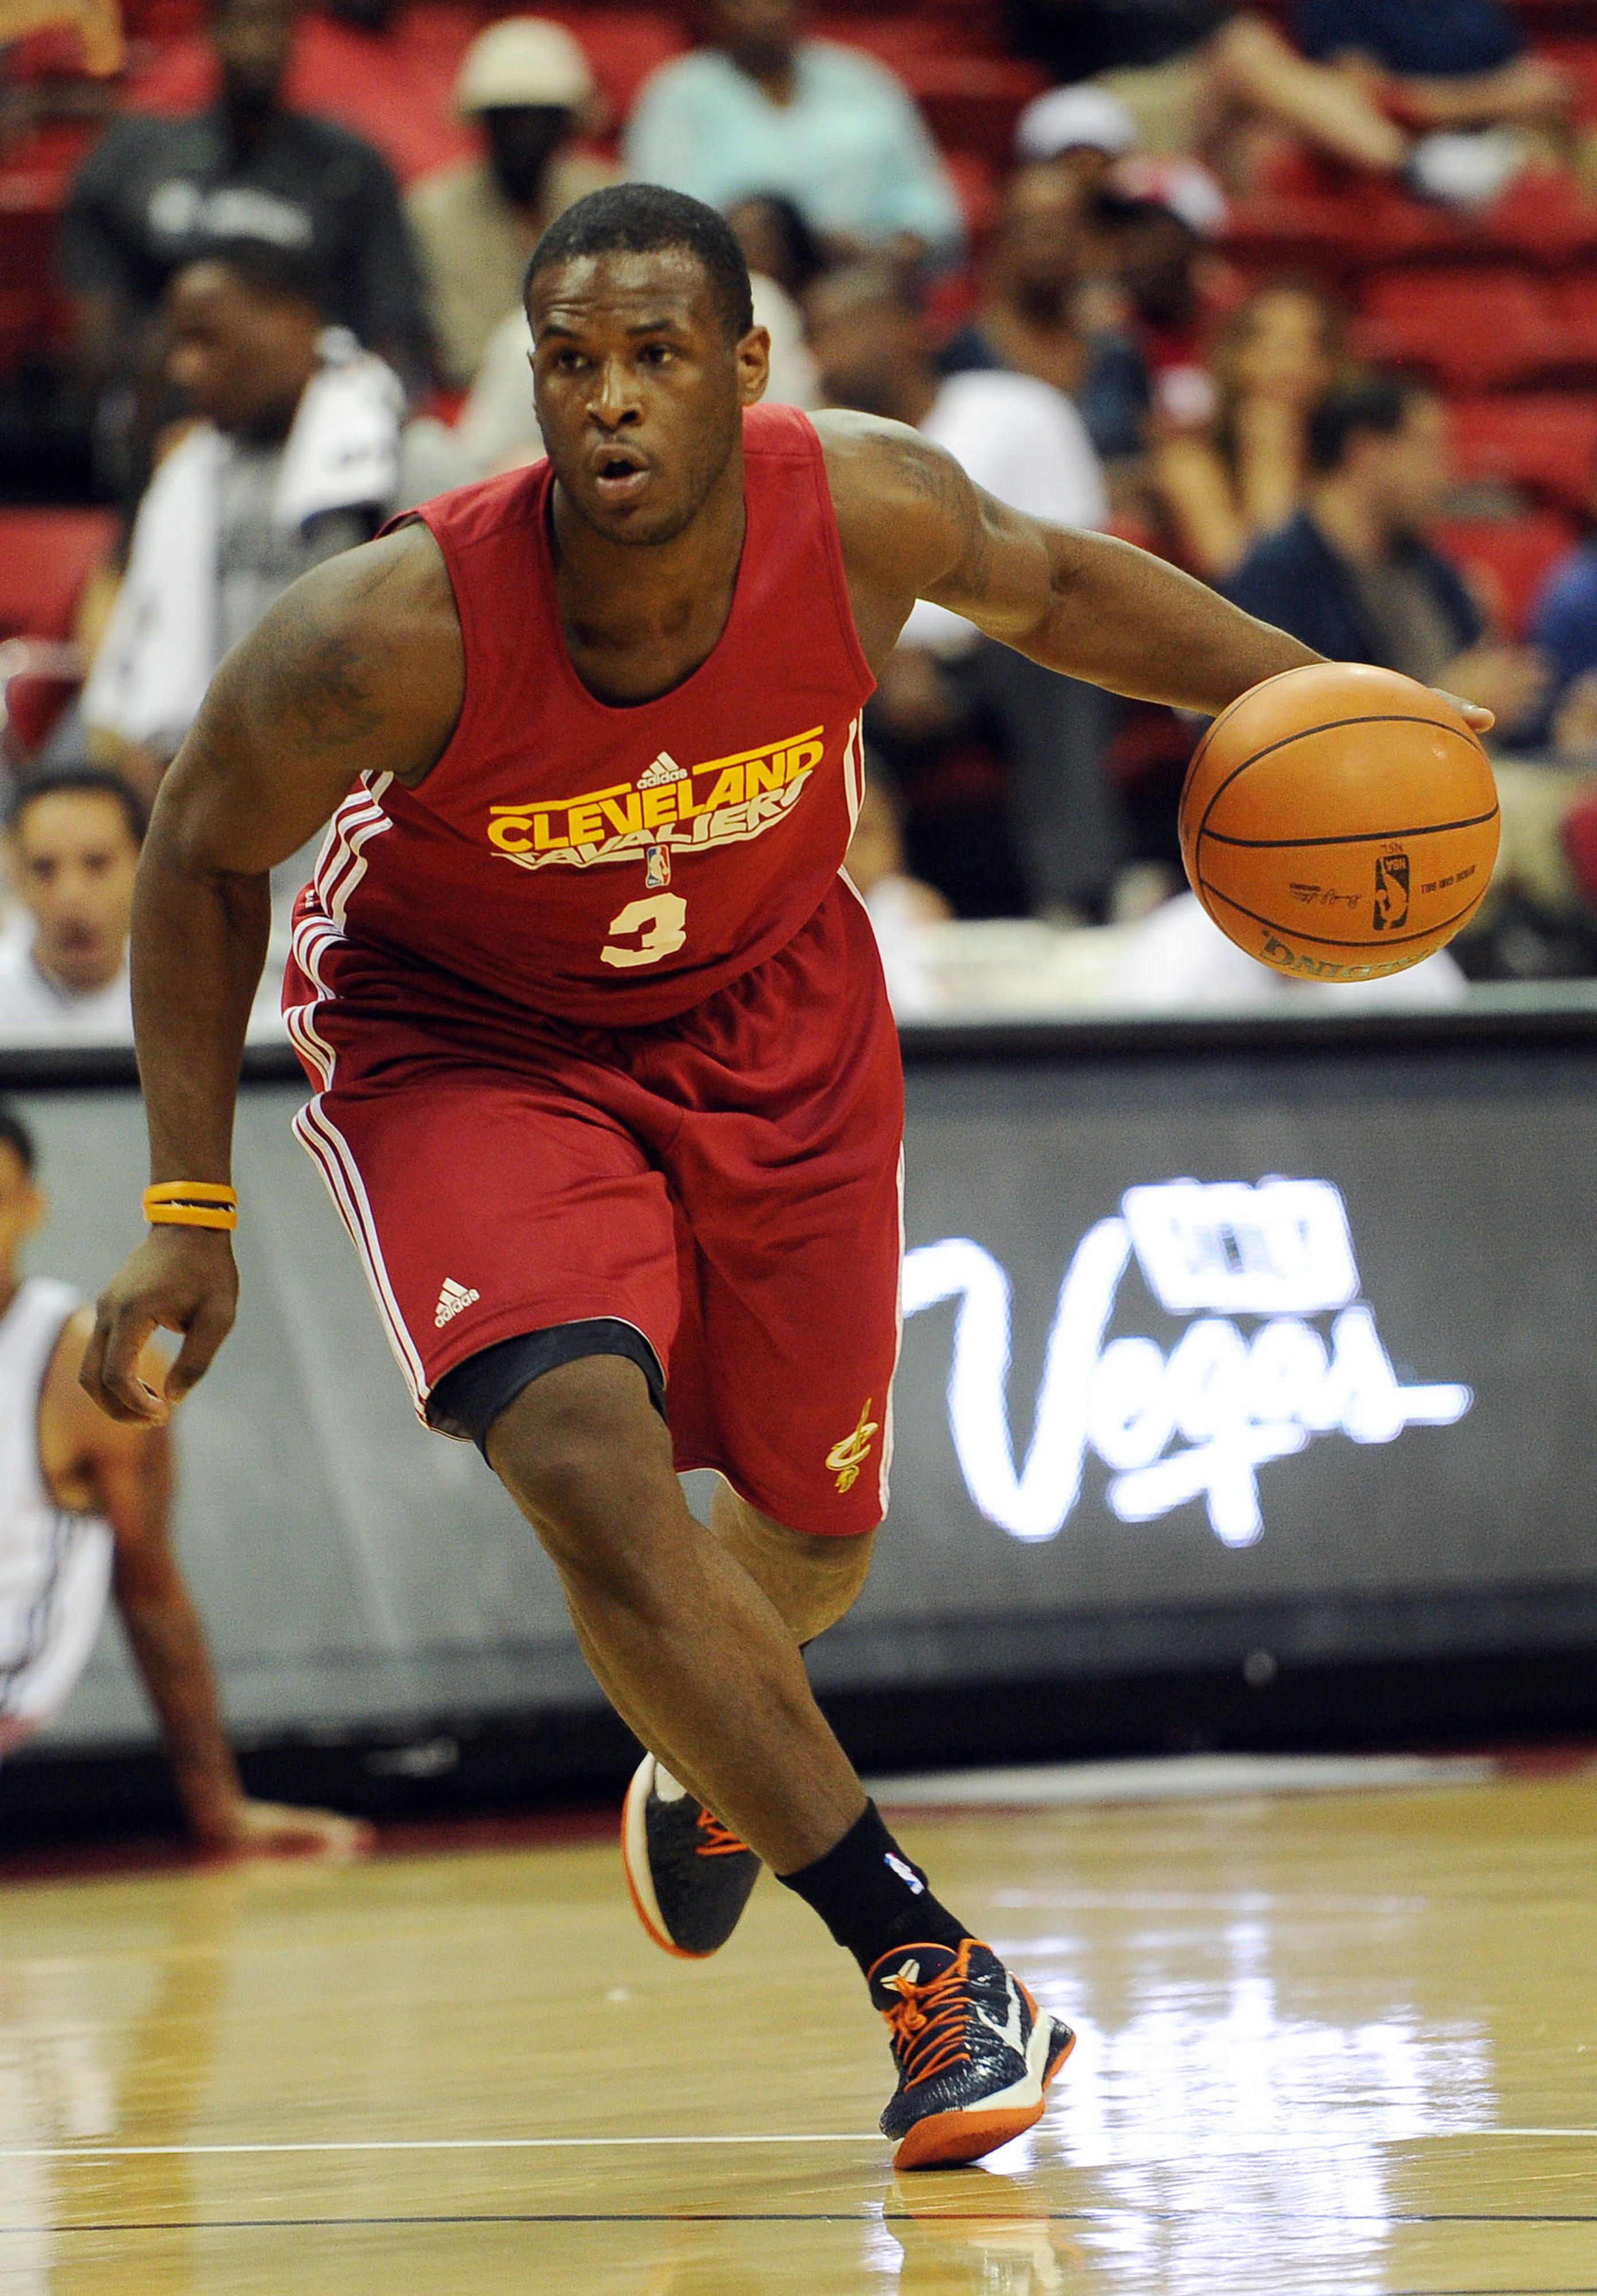 July 17, 2012; Las Vegas, NV, USA;   Cleveland Cavaliers guard Dion Waiters (3) during the game against the Phoenix Suns at the Thomas and Mack Center. Mandatory Credit: Jayne Kamin-Oncea-US PRESSWIRE